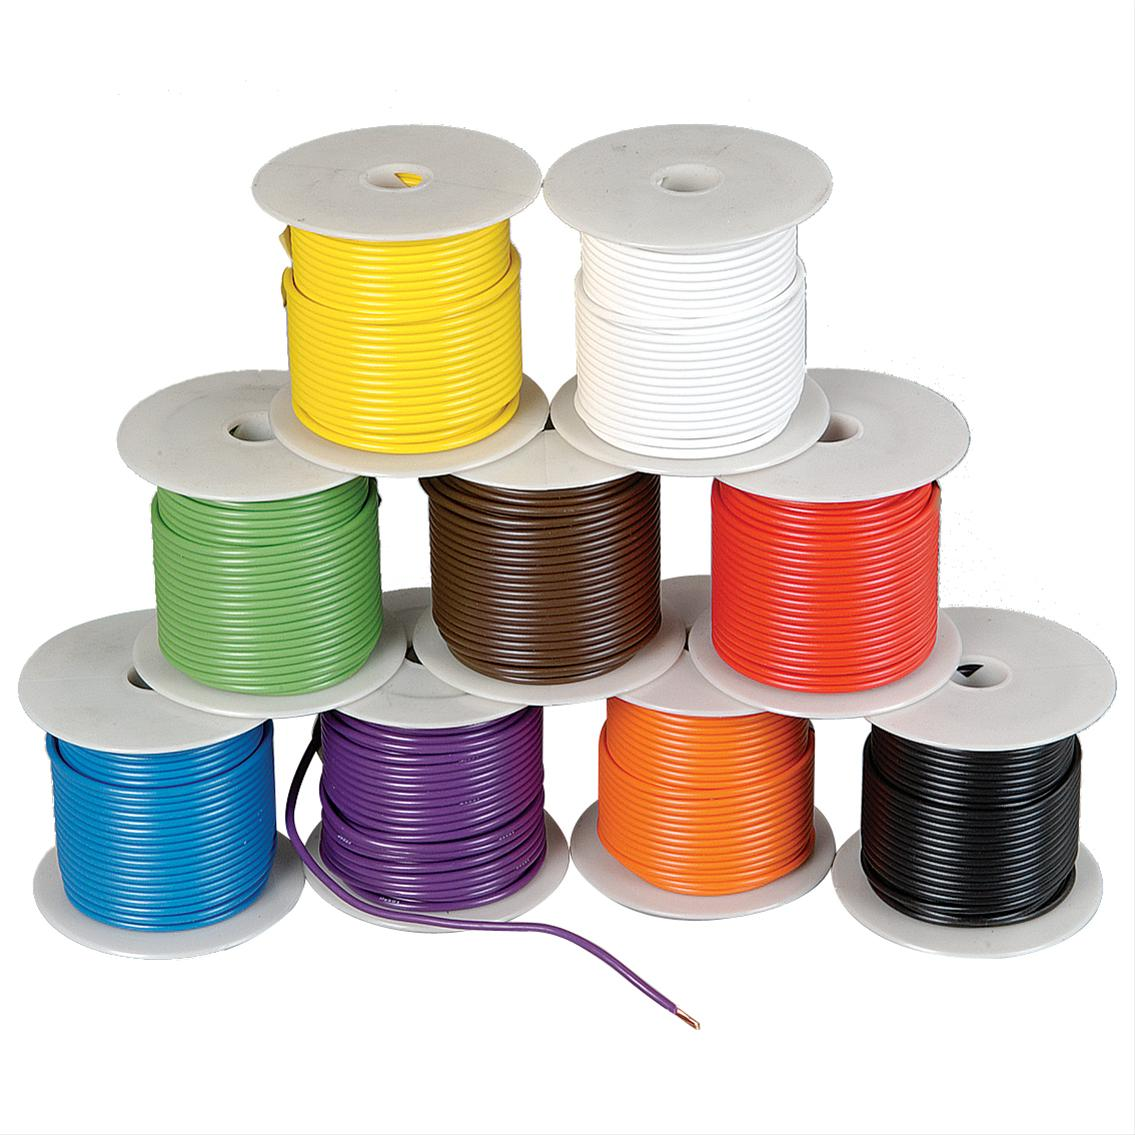 Rolls of electronic grade wire